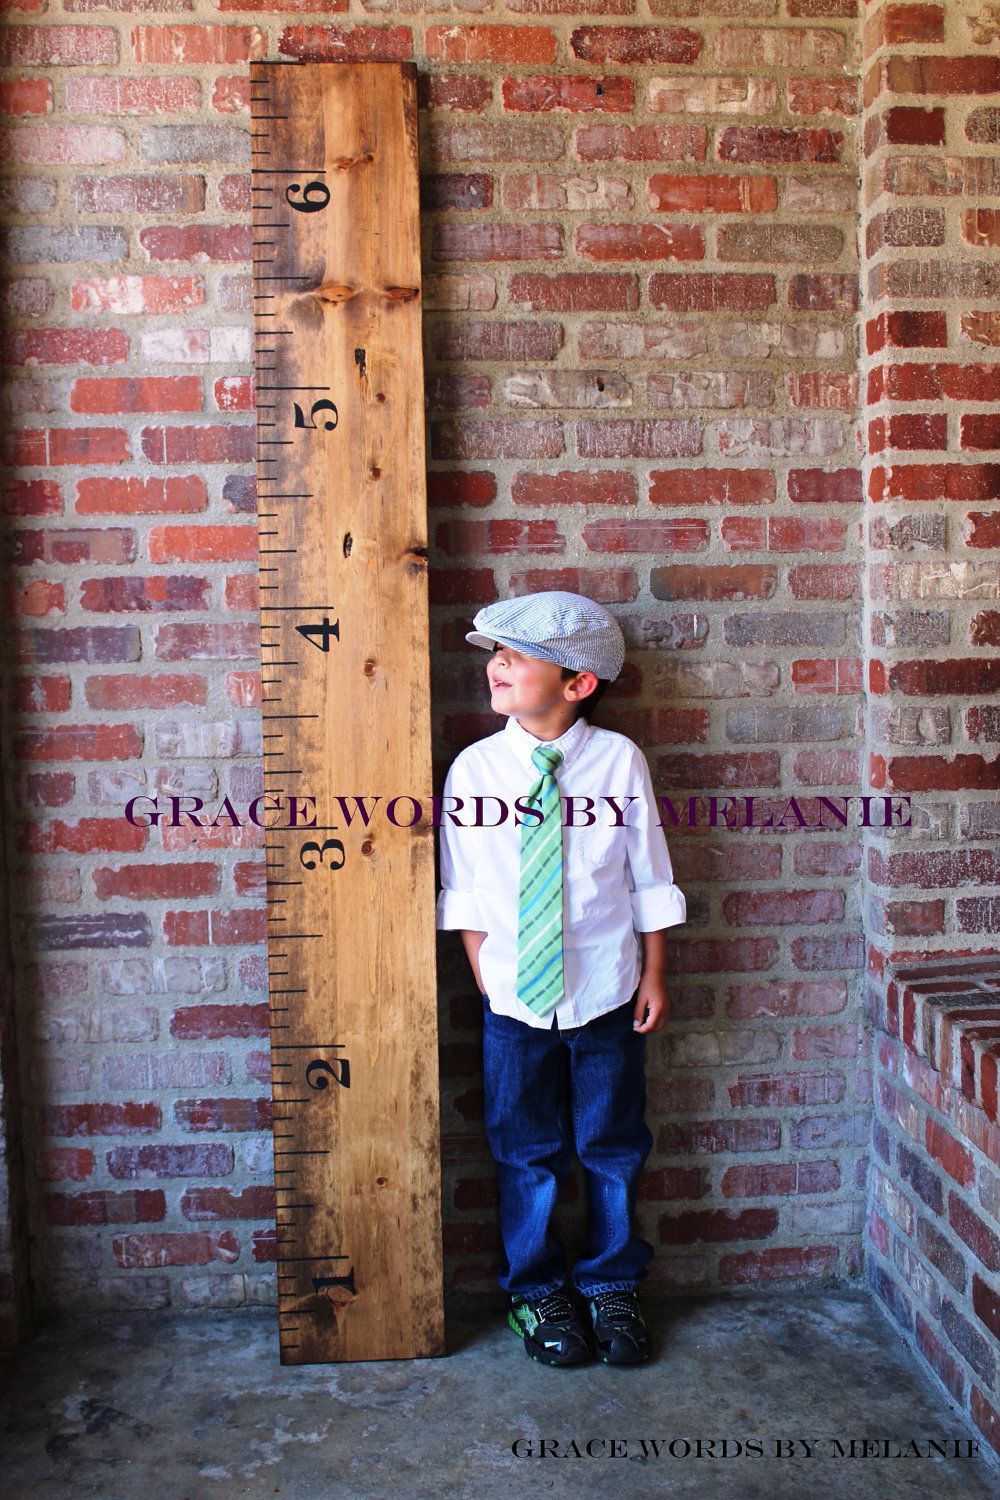 Vintage oversized growth chart ruler by gracewordsbymelanie on etsy vintage oversized growth chart ruler by gracewordsbymelanie on etsy httpsetsy geenschuldenfo Choice Image